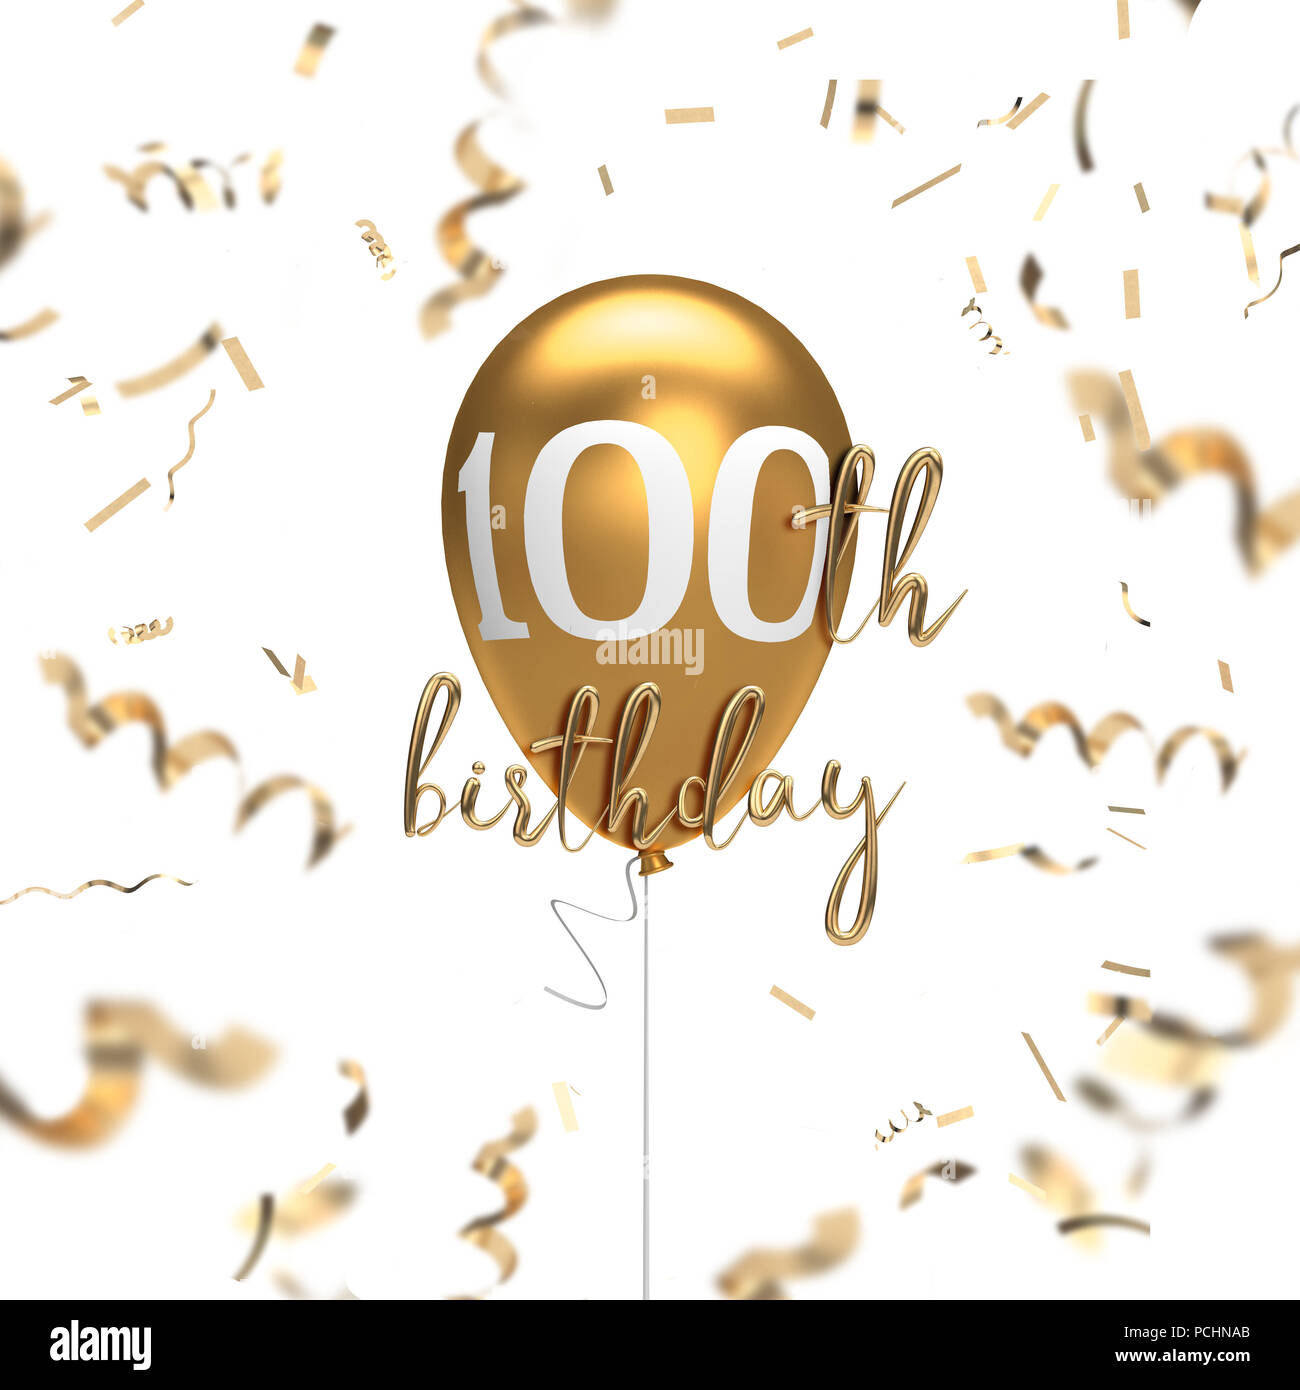 Happy 100th Birthday Gold Balloon Greeting Background 3D Rendering